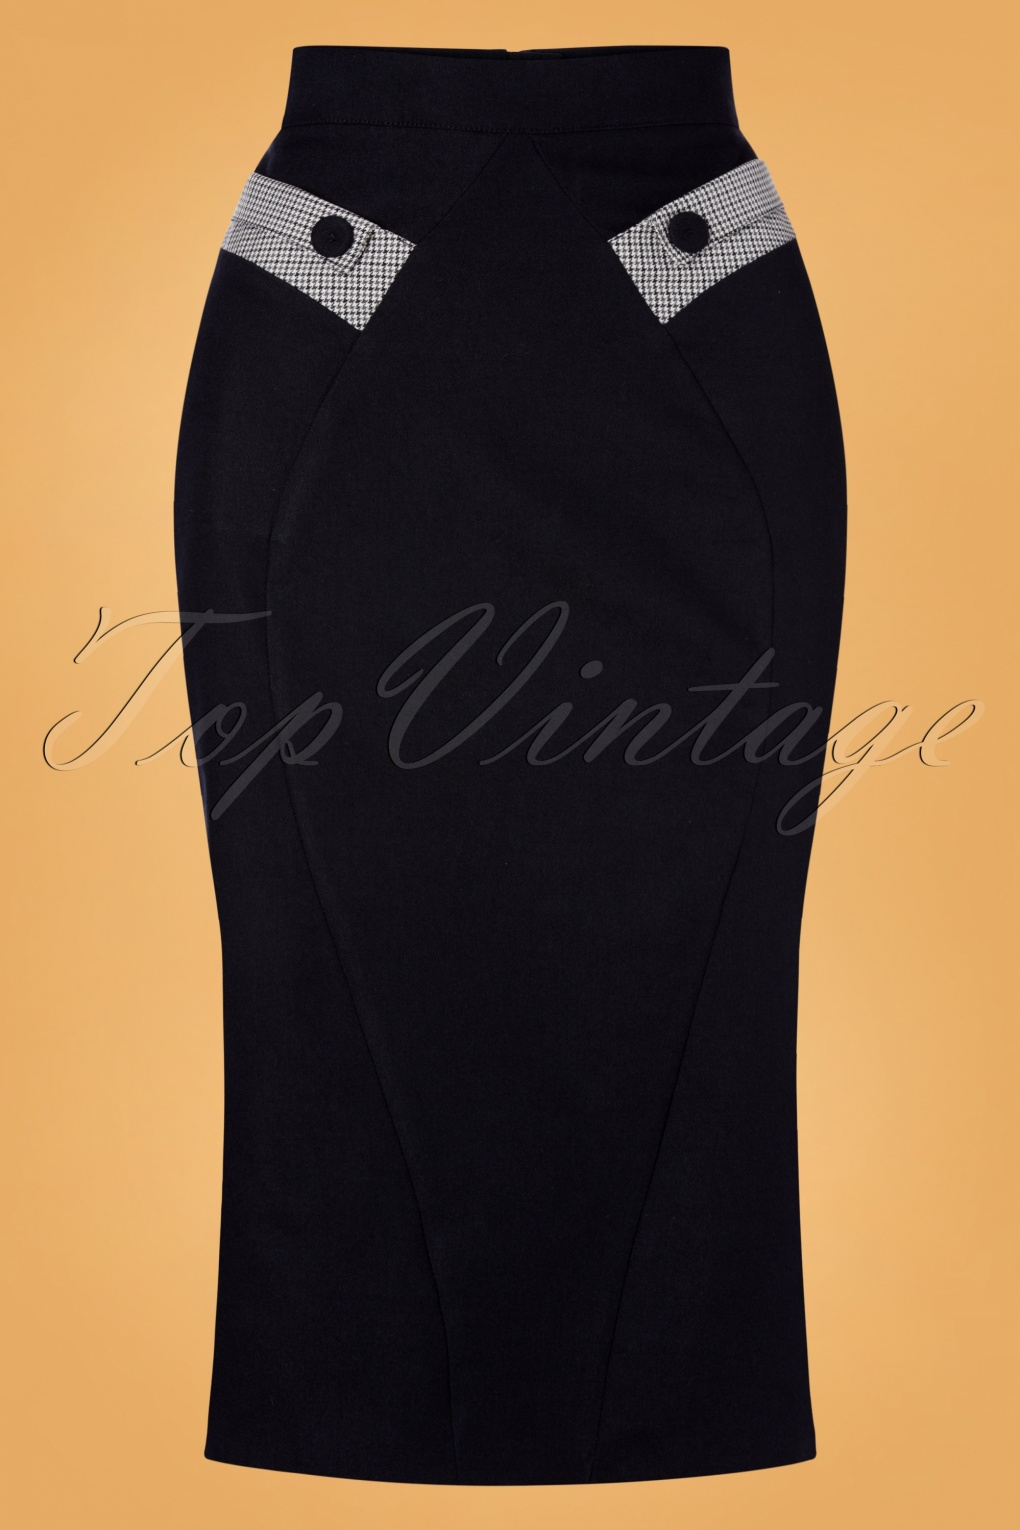 1950s Swing Skirt, Poodle Skirt, Pencil Skirts 50s Eszter Houndstooth Pencil Skirt in Dark Navy £51.09 AT vintagedancer.com